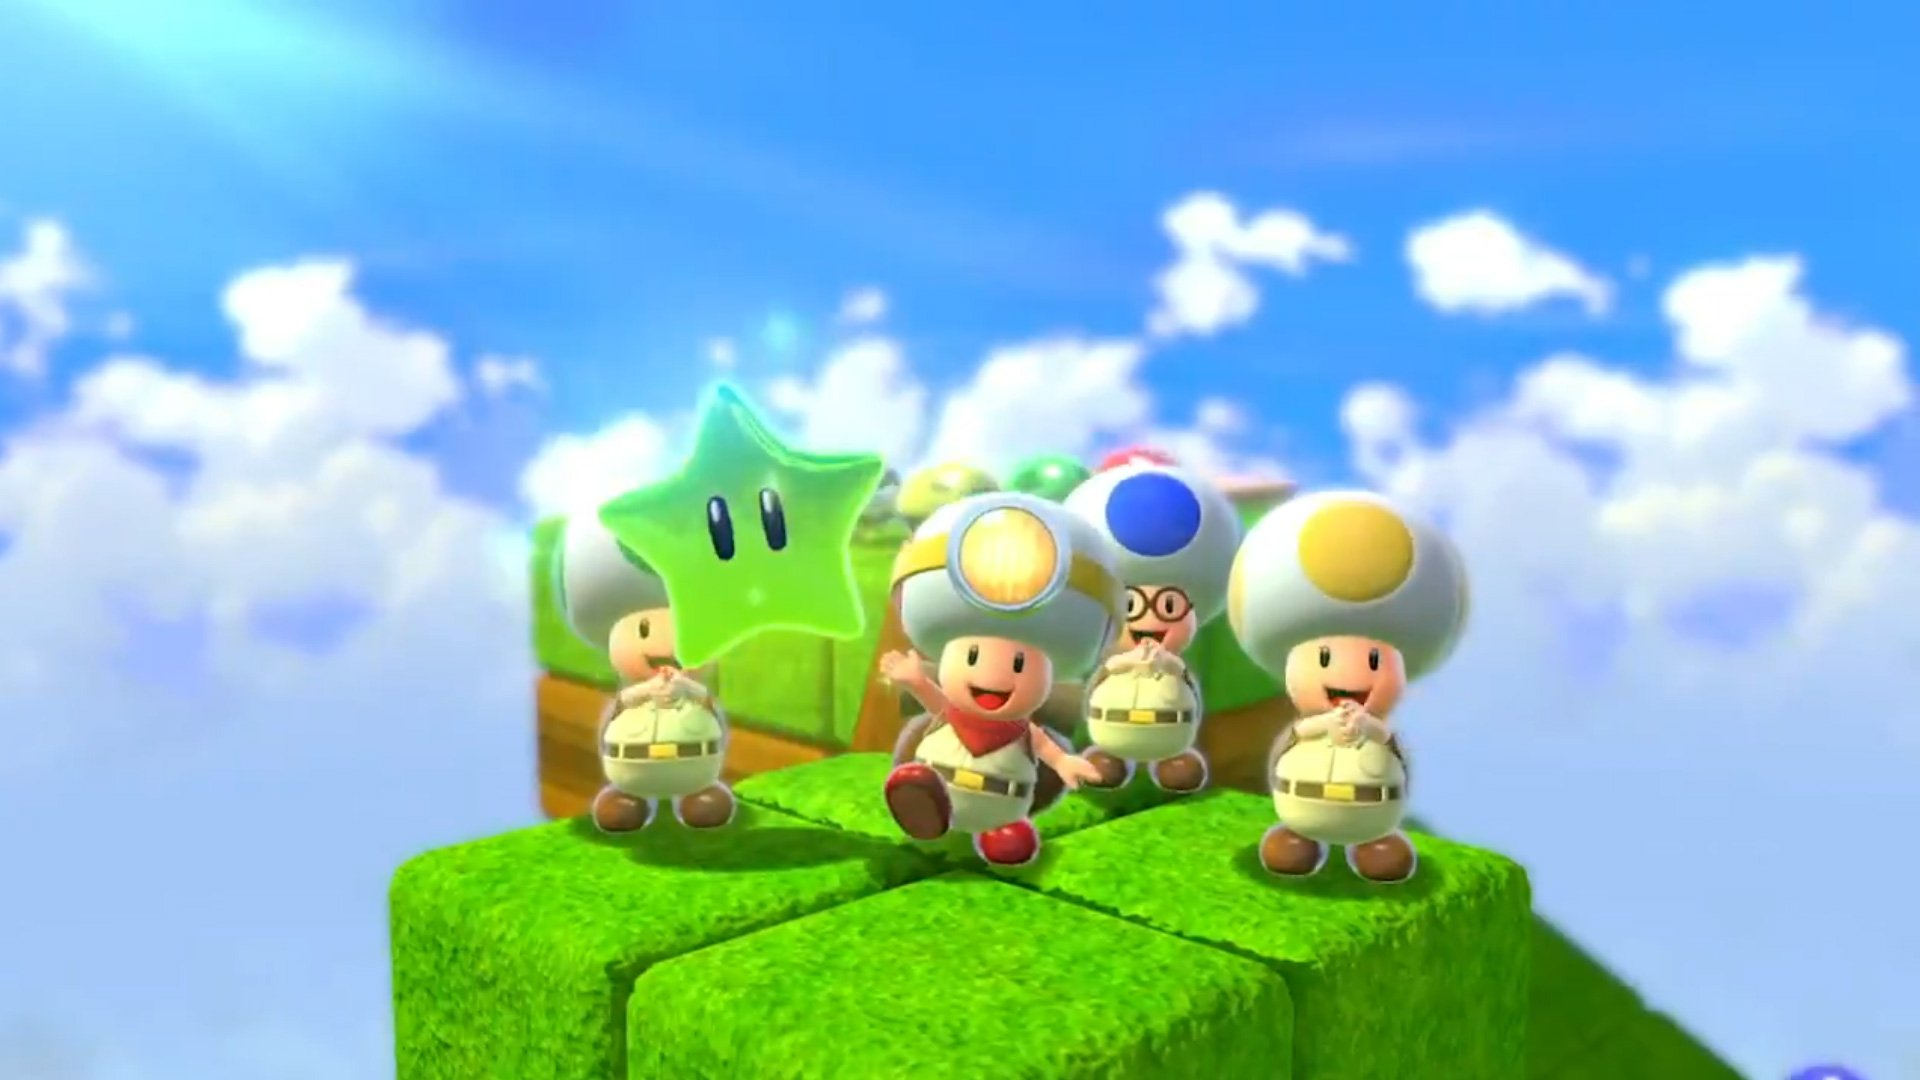 The Captain Toad levels got a co-op boost for Super Mario 3D World + Bowser's Fury screenshot